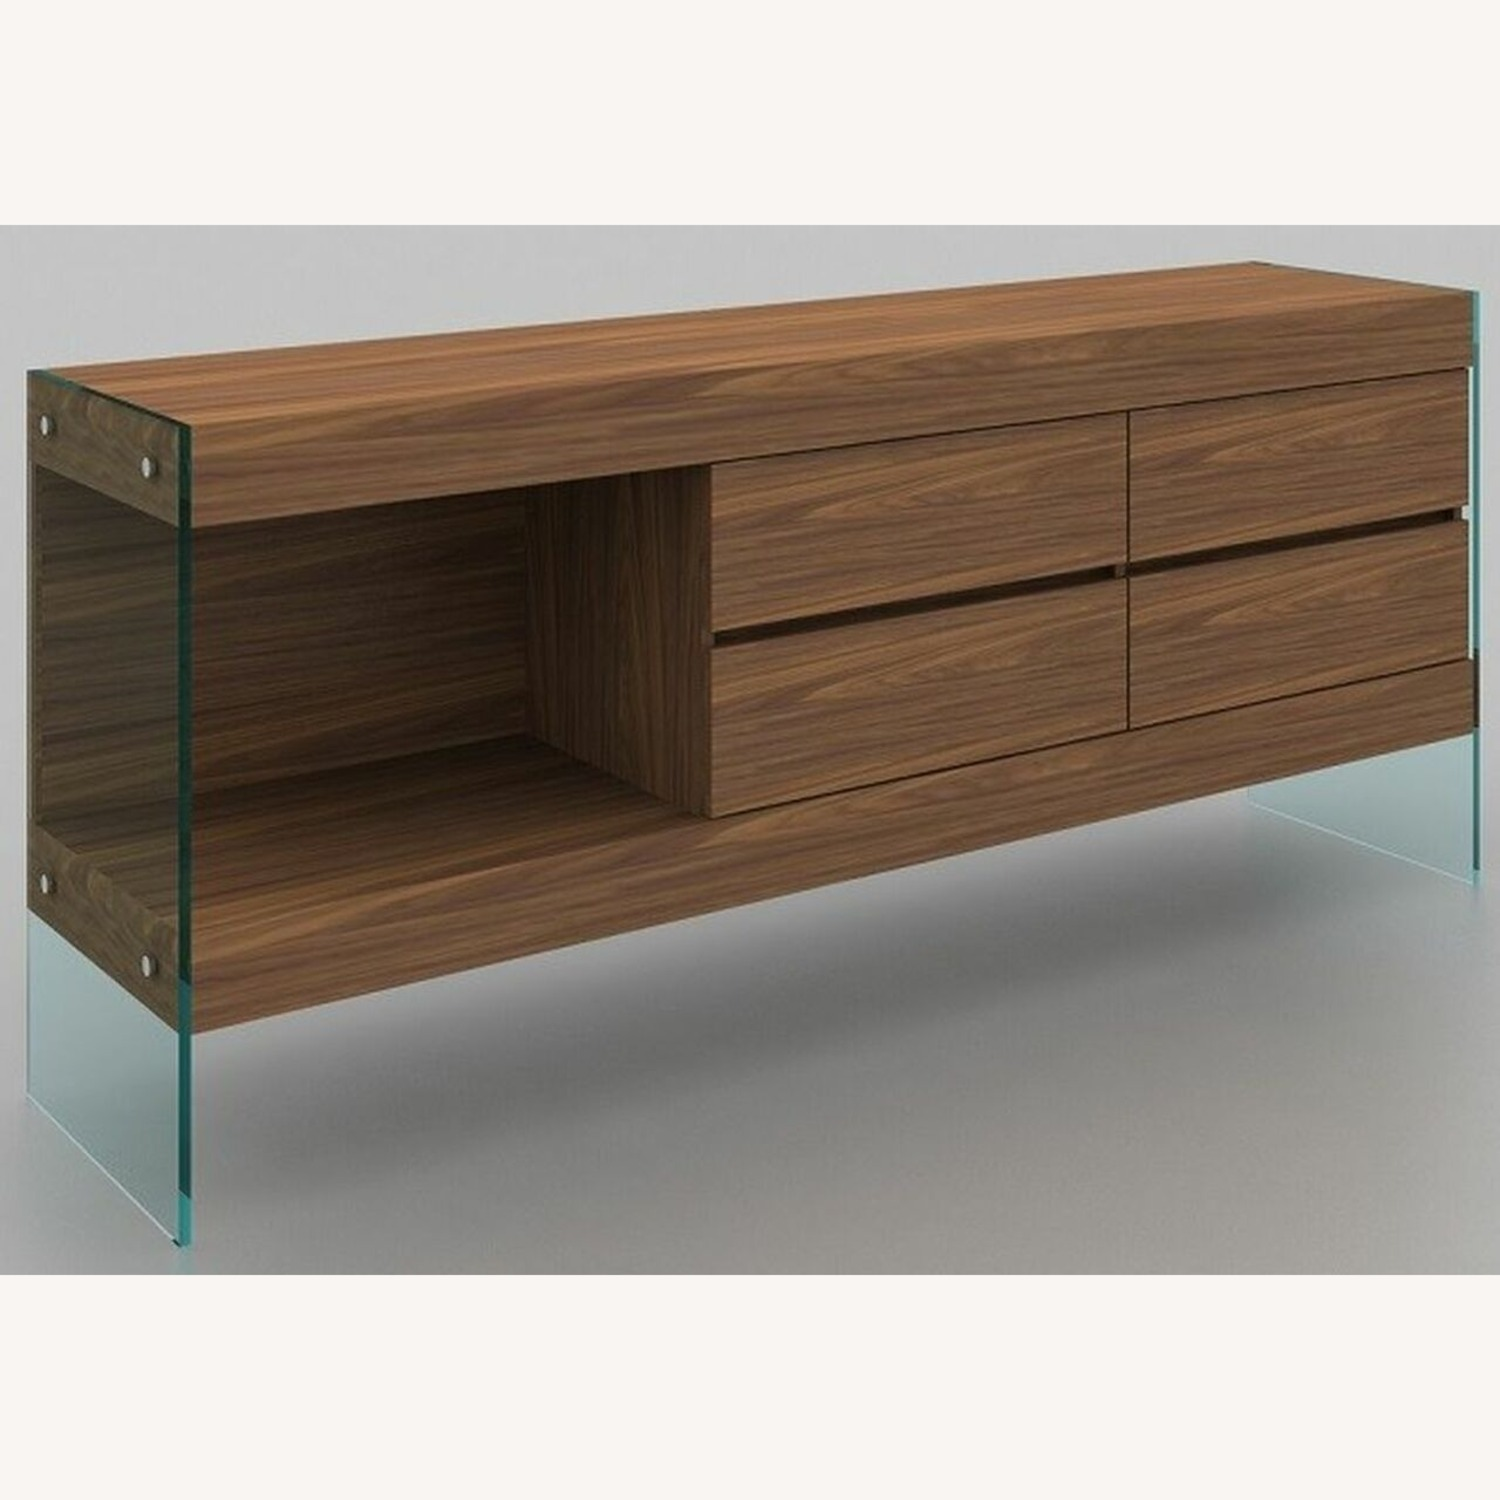 Buffet Crafted In Walnut Matte Finish W/ 4 Drawers - image-1